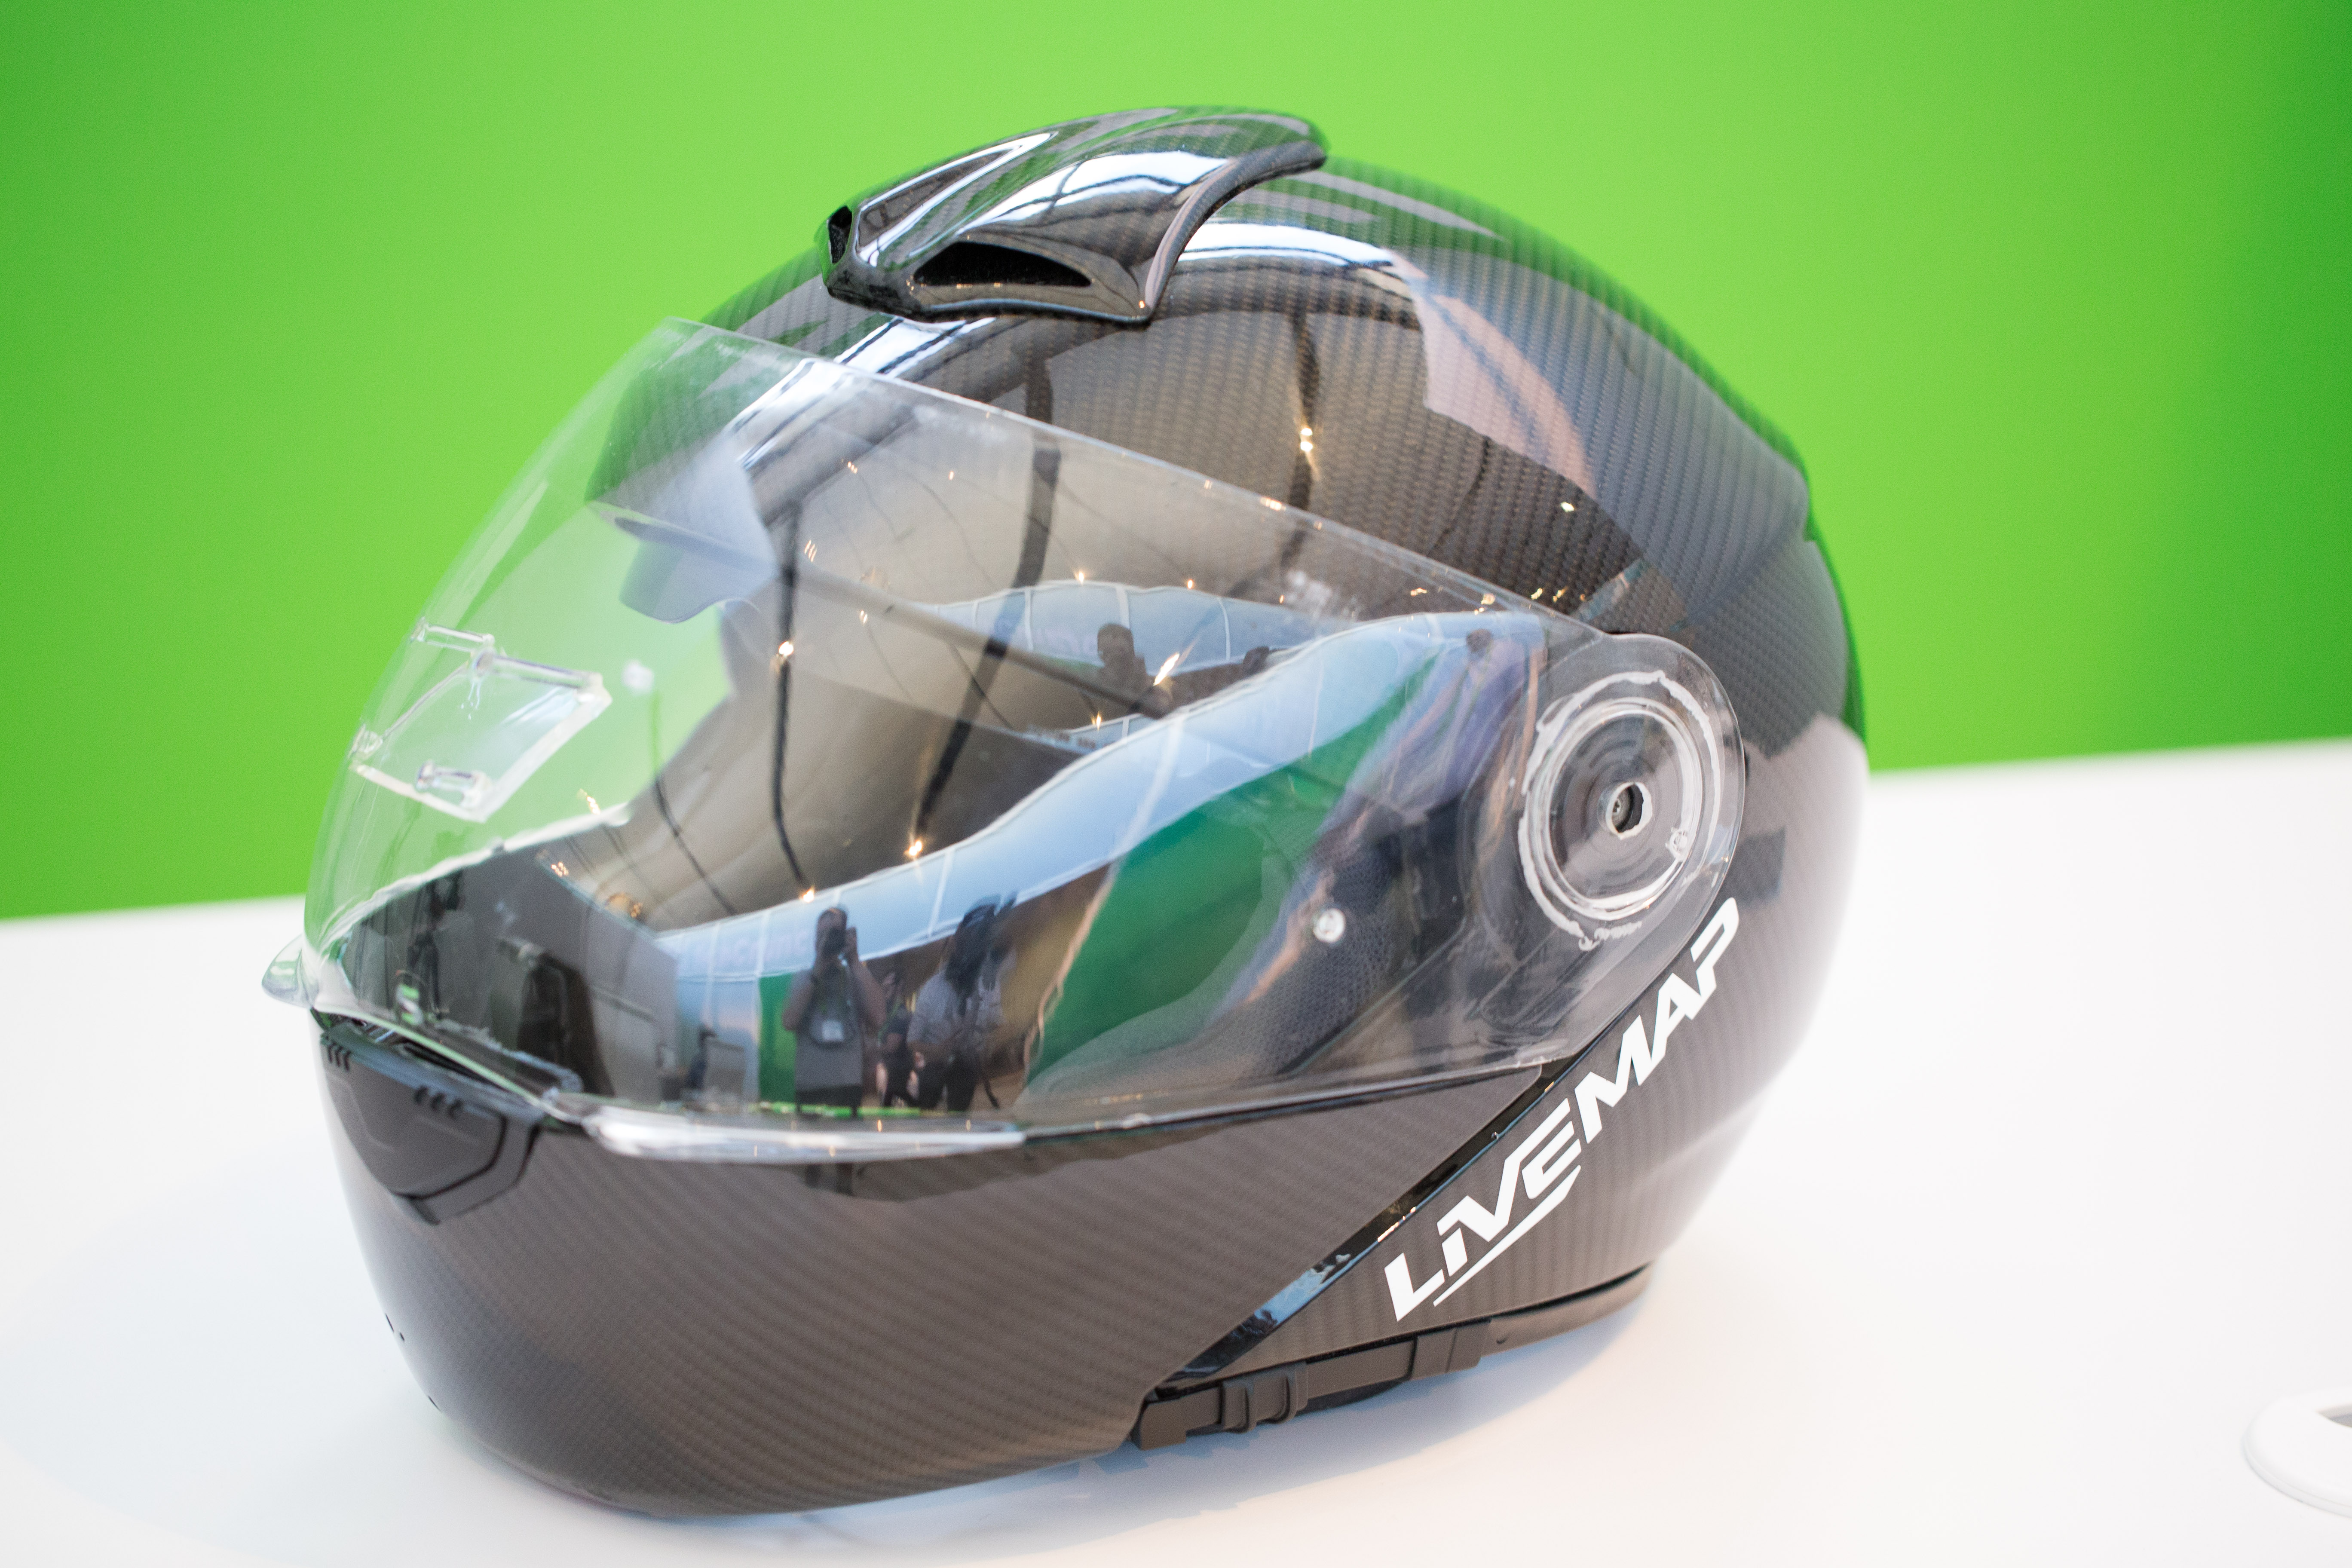 LiveMap shows off latest prototype of augmented reality motorcycle helmet